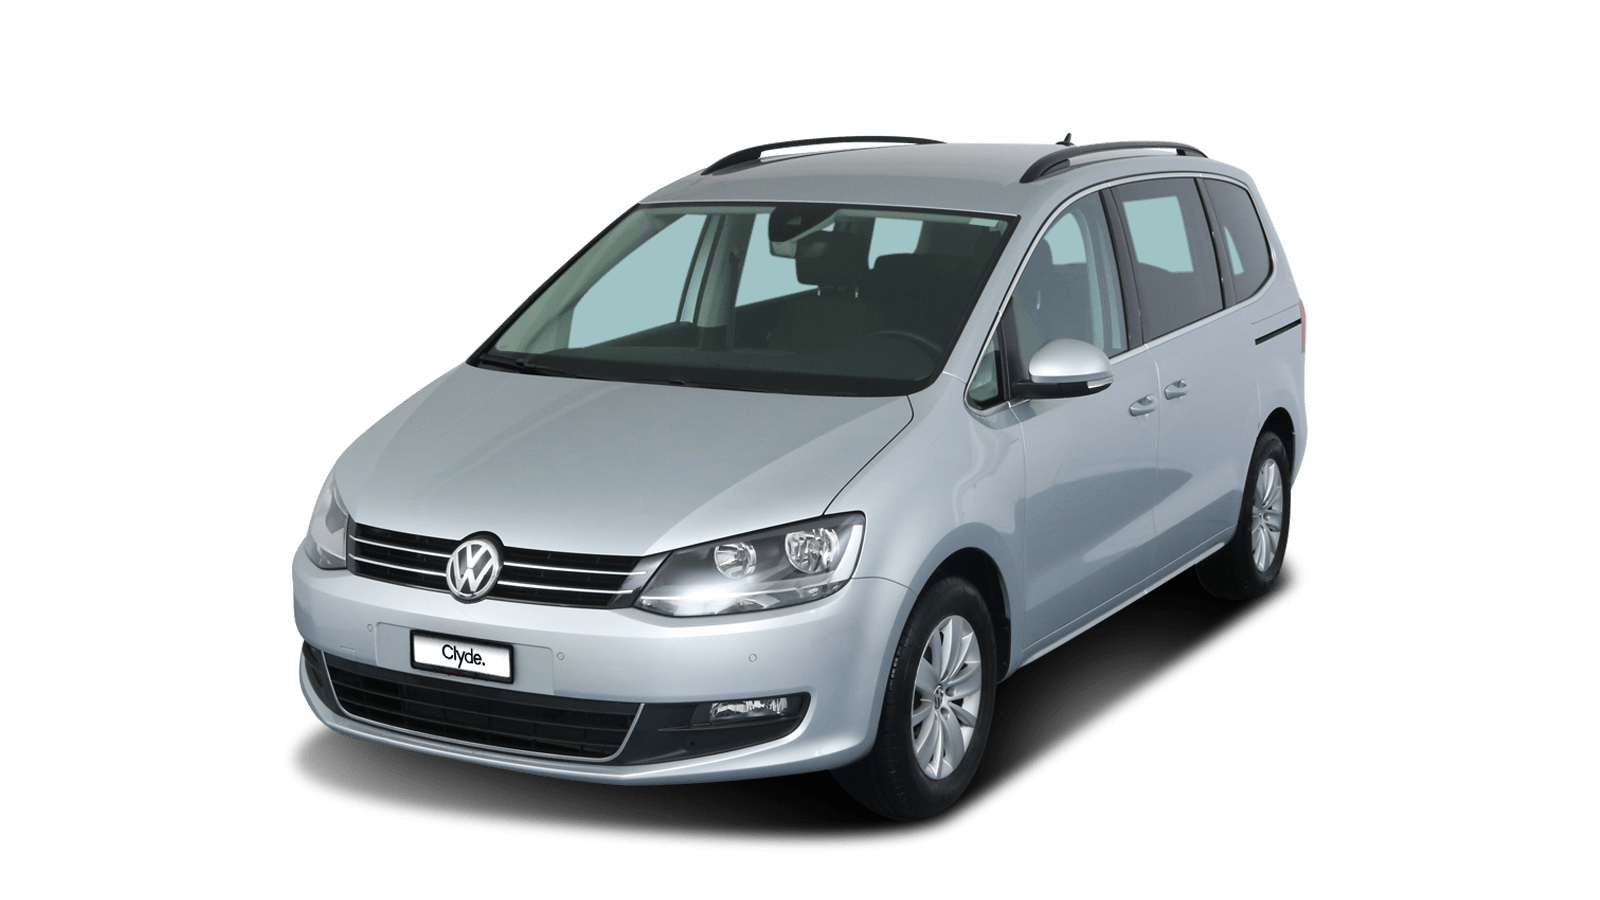 VW Sharan Silber front - Clyde Auto-Abo